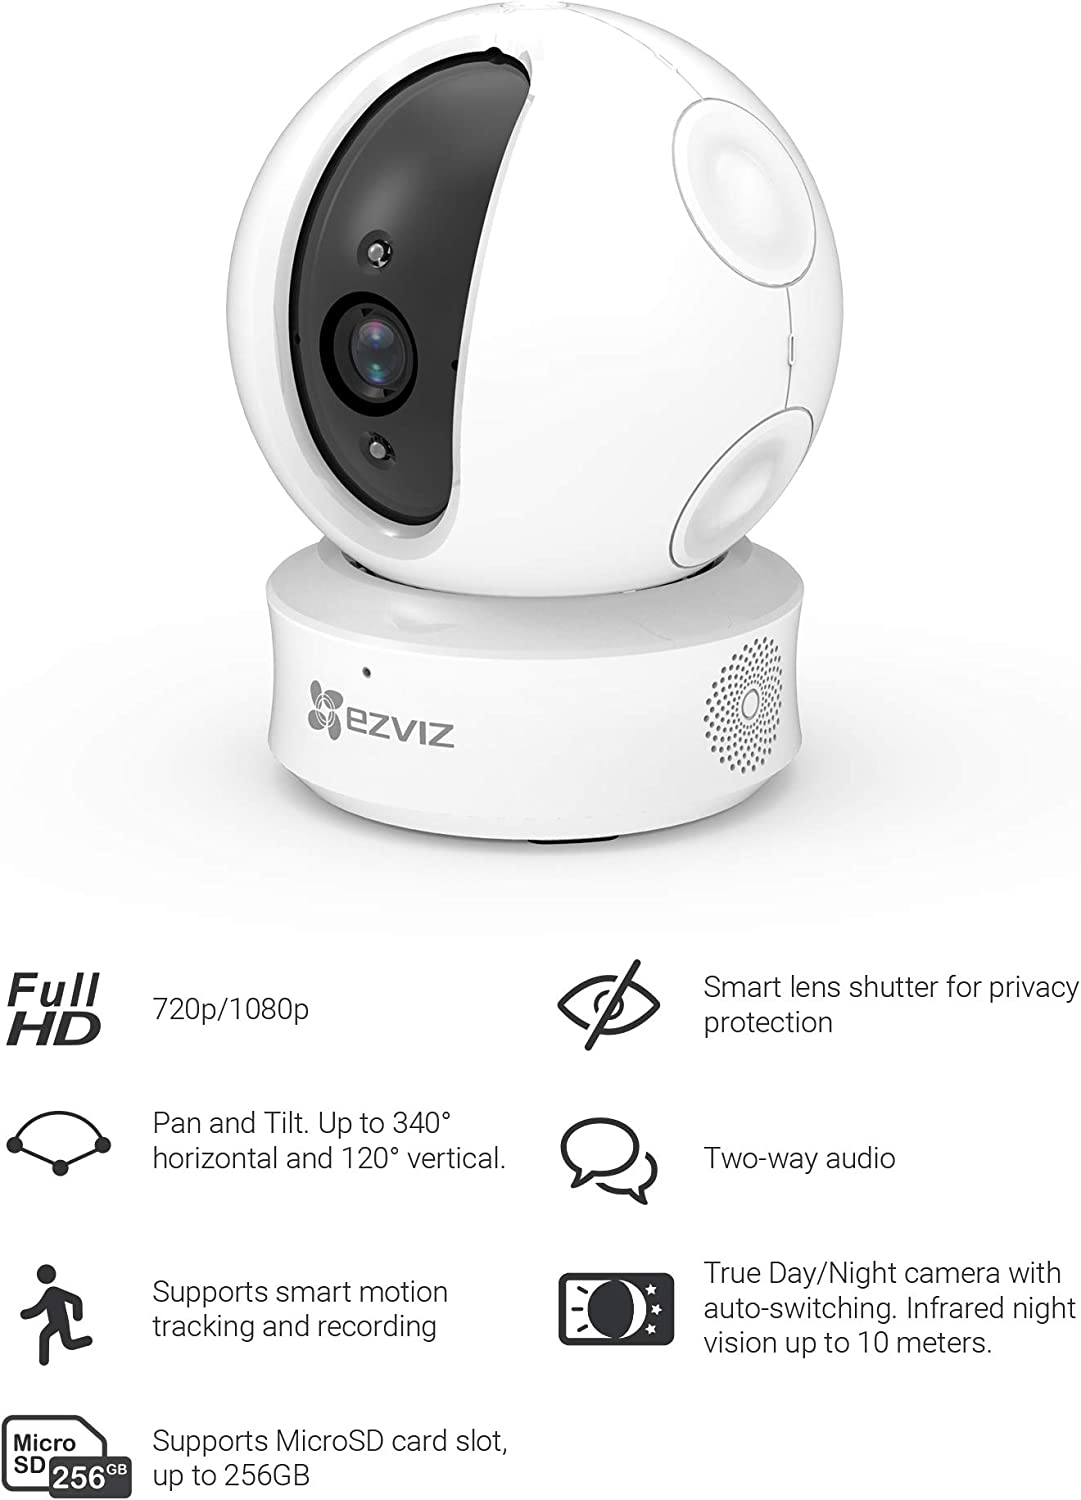 EZVIZ C6C 720p Indoor Pan//Tilt WiFi Security Camera 360/° Full Room Coverage Auto Motion Tracking Two-Way Audio Clear Night Vision up to 30ft 2.4GHz WiFi